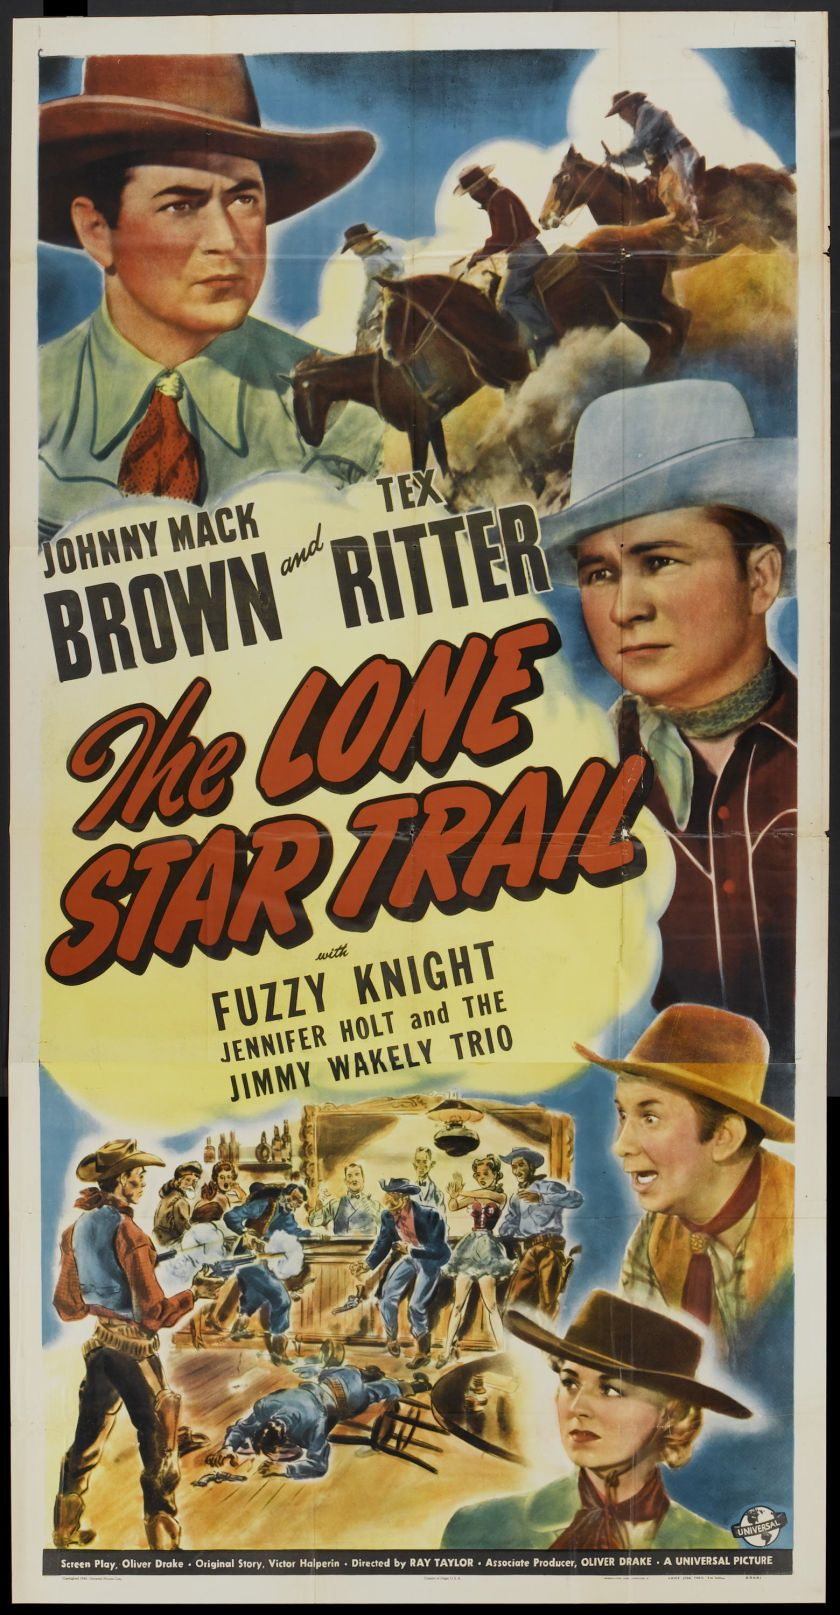 Download The Lone Star Trail Full-Movie Free